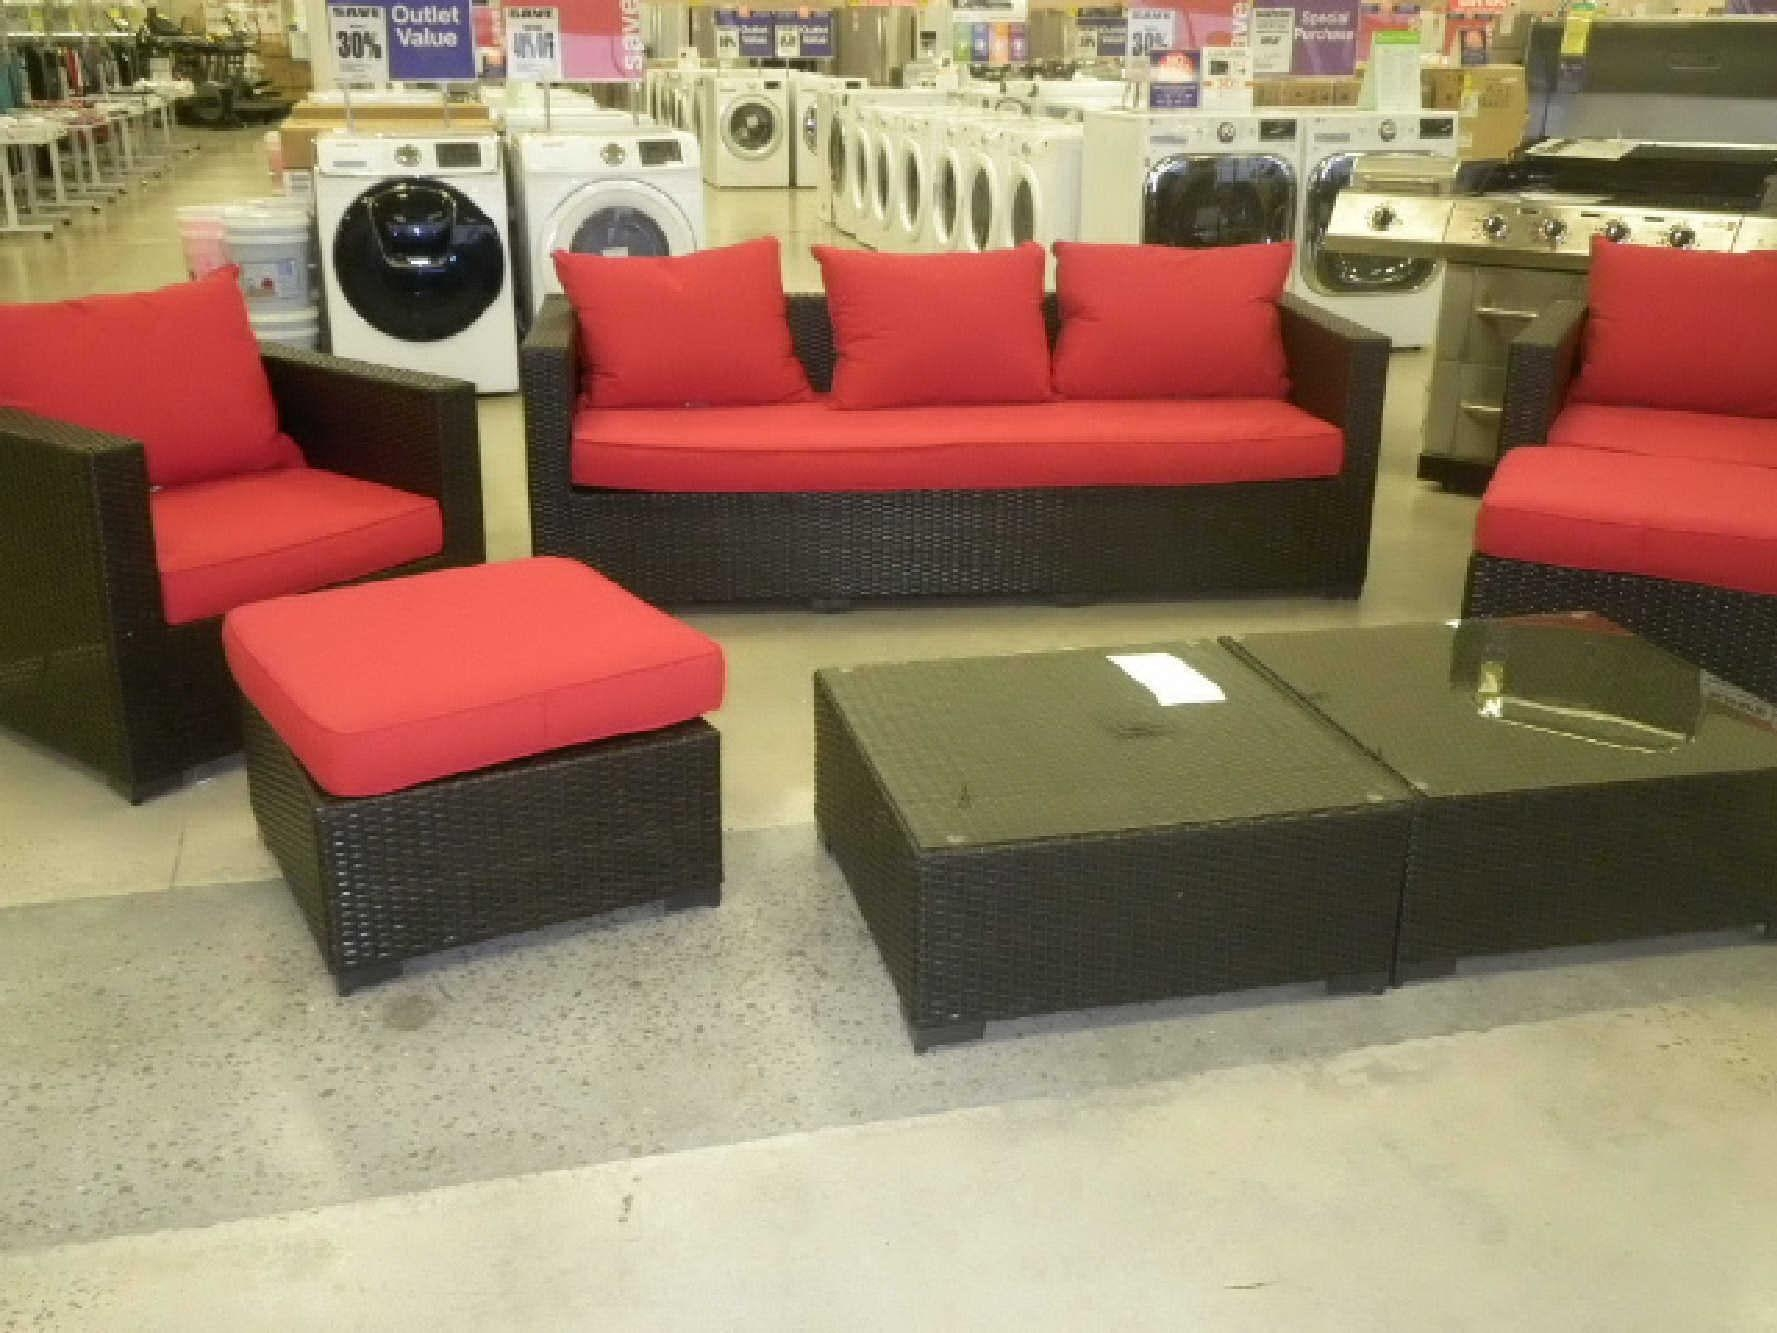 75 Awesome Sears Outlet Sofas Home Design | Hoozoo with Florence Grand Sofas